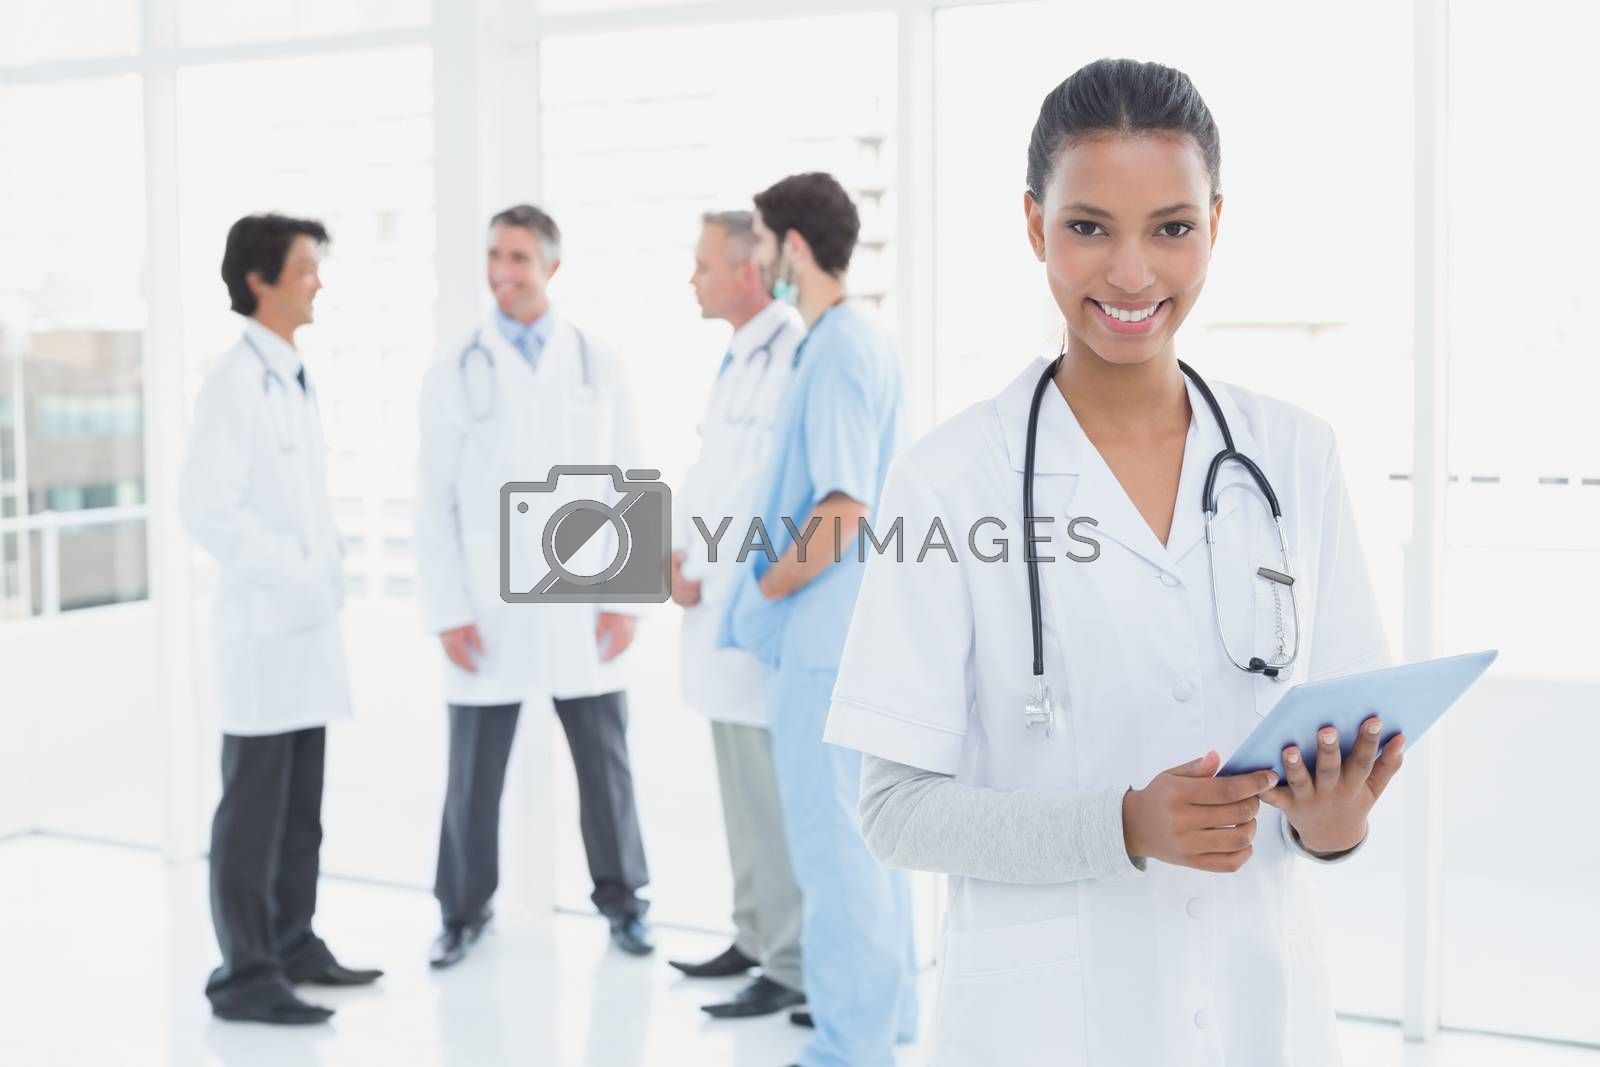 Smiling doctor looking at camera with co-workers behind her